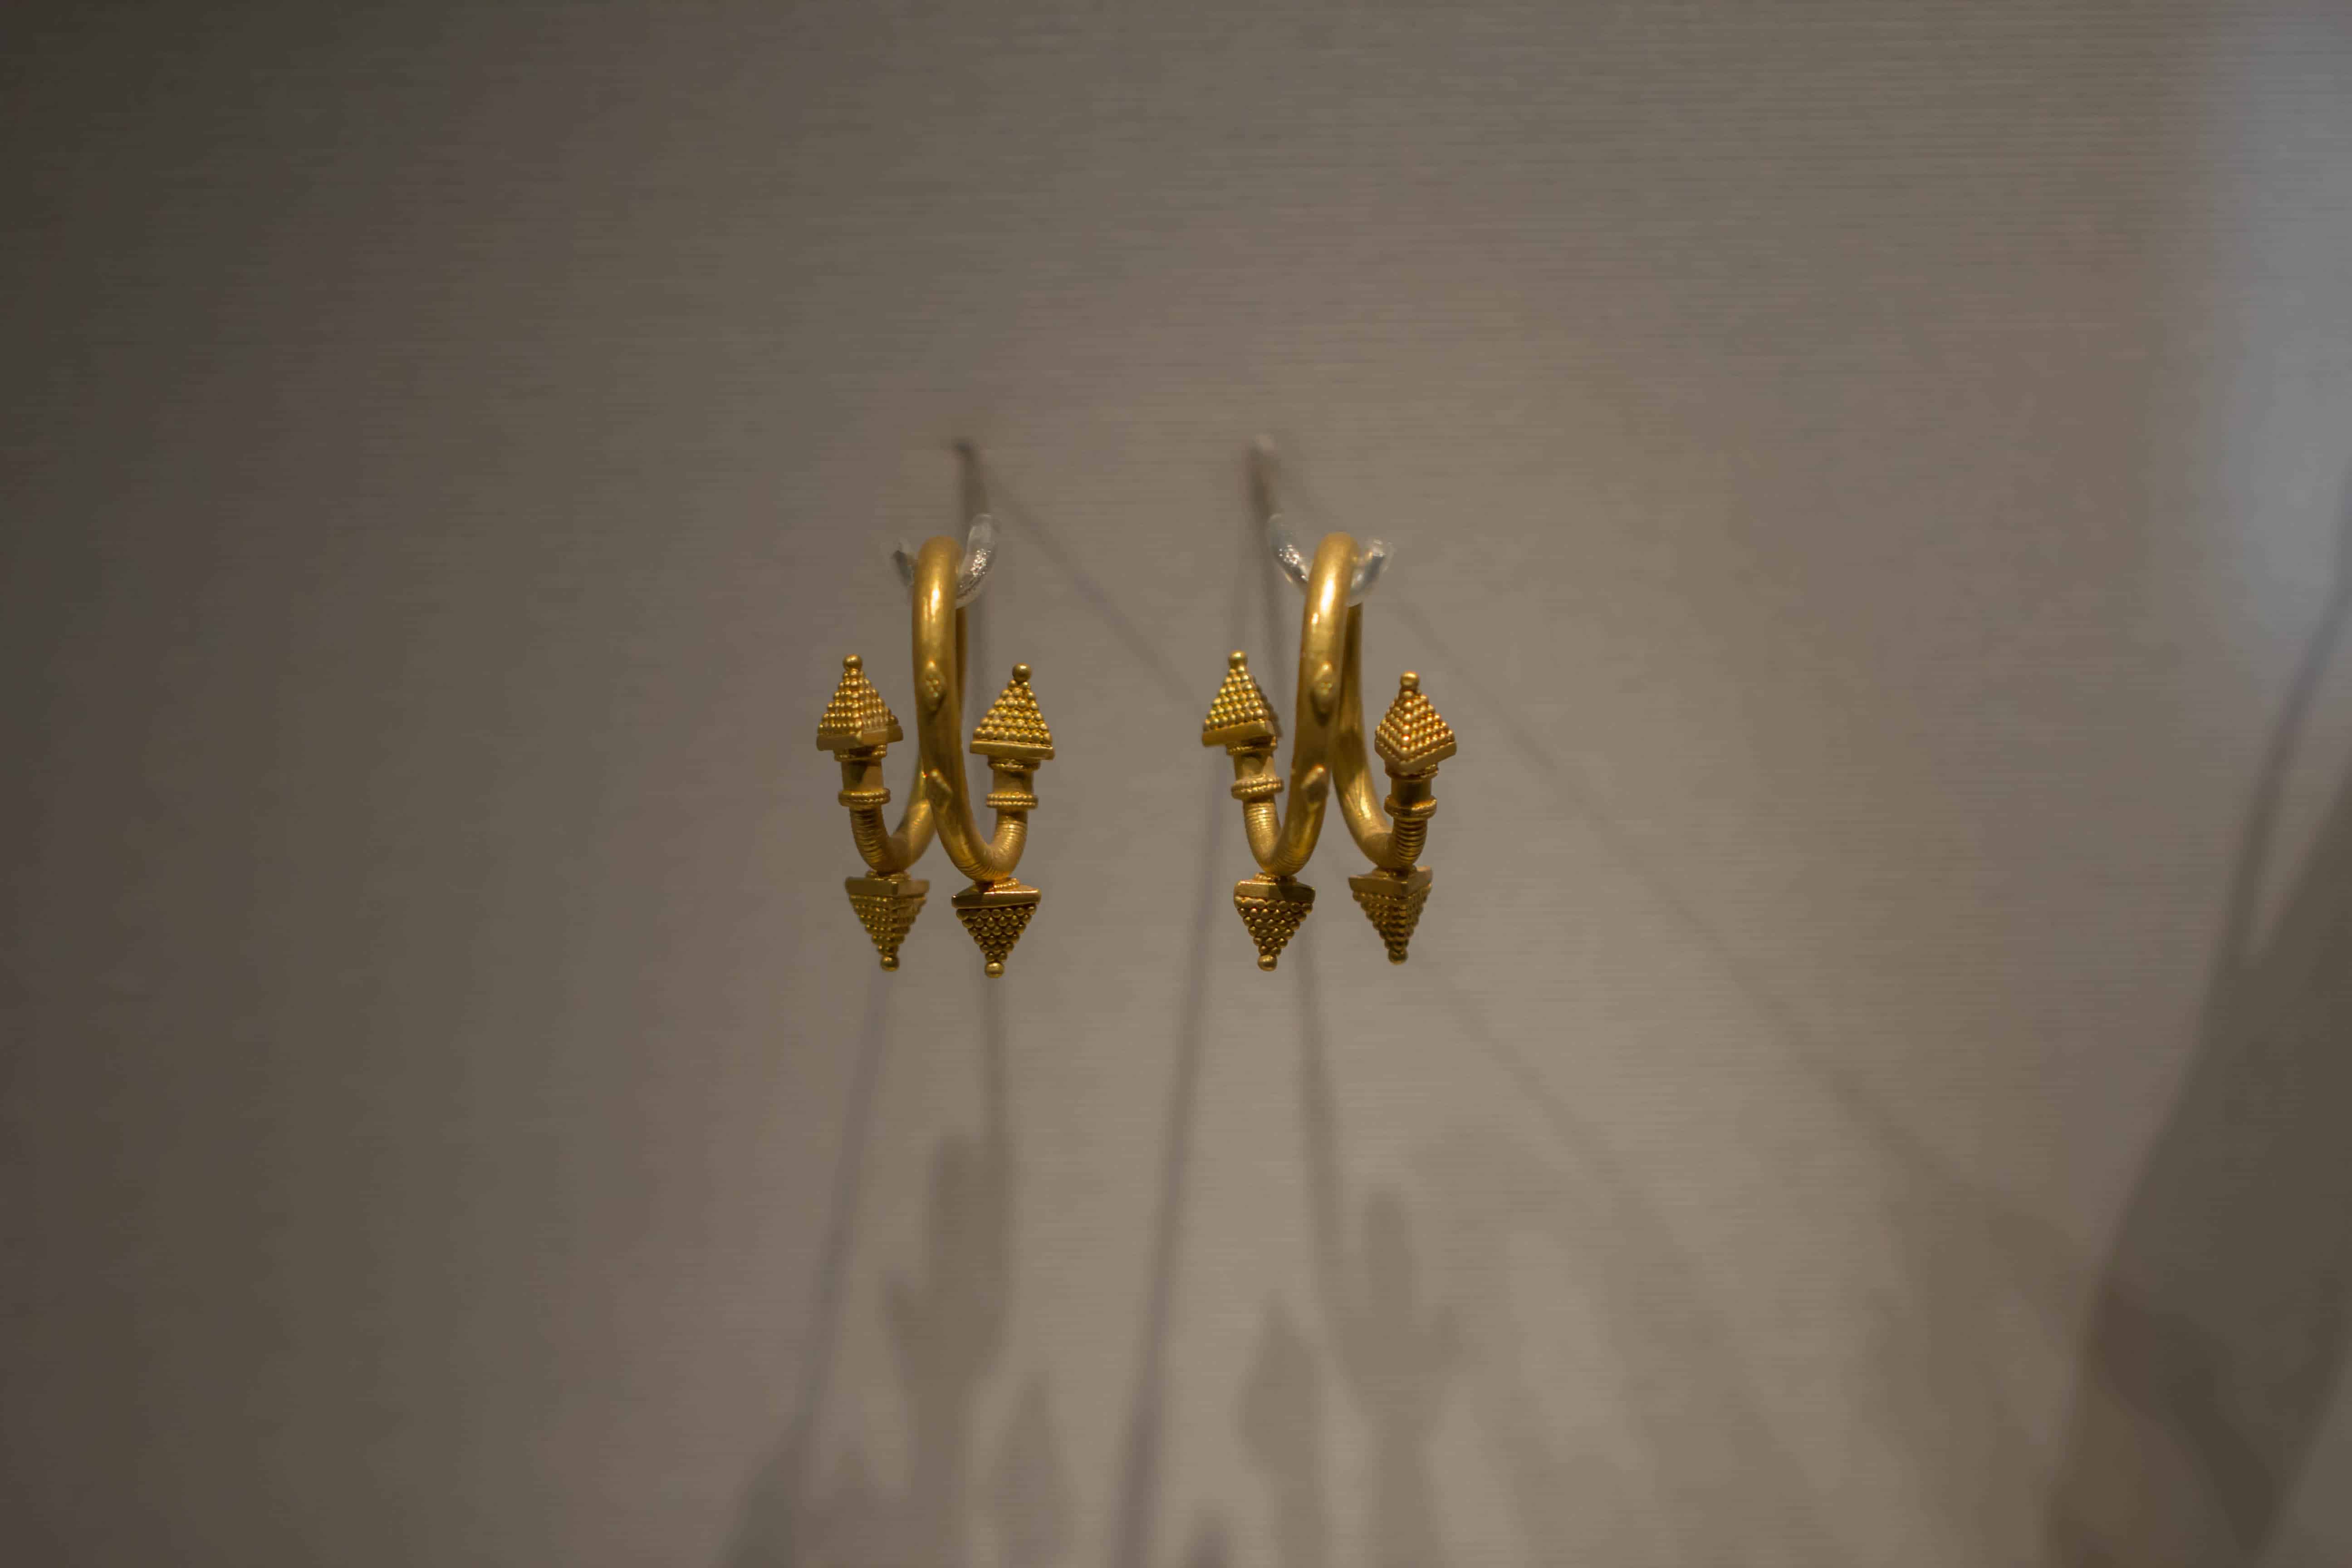 Set of Golden Earrings.jpg